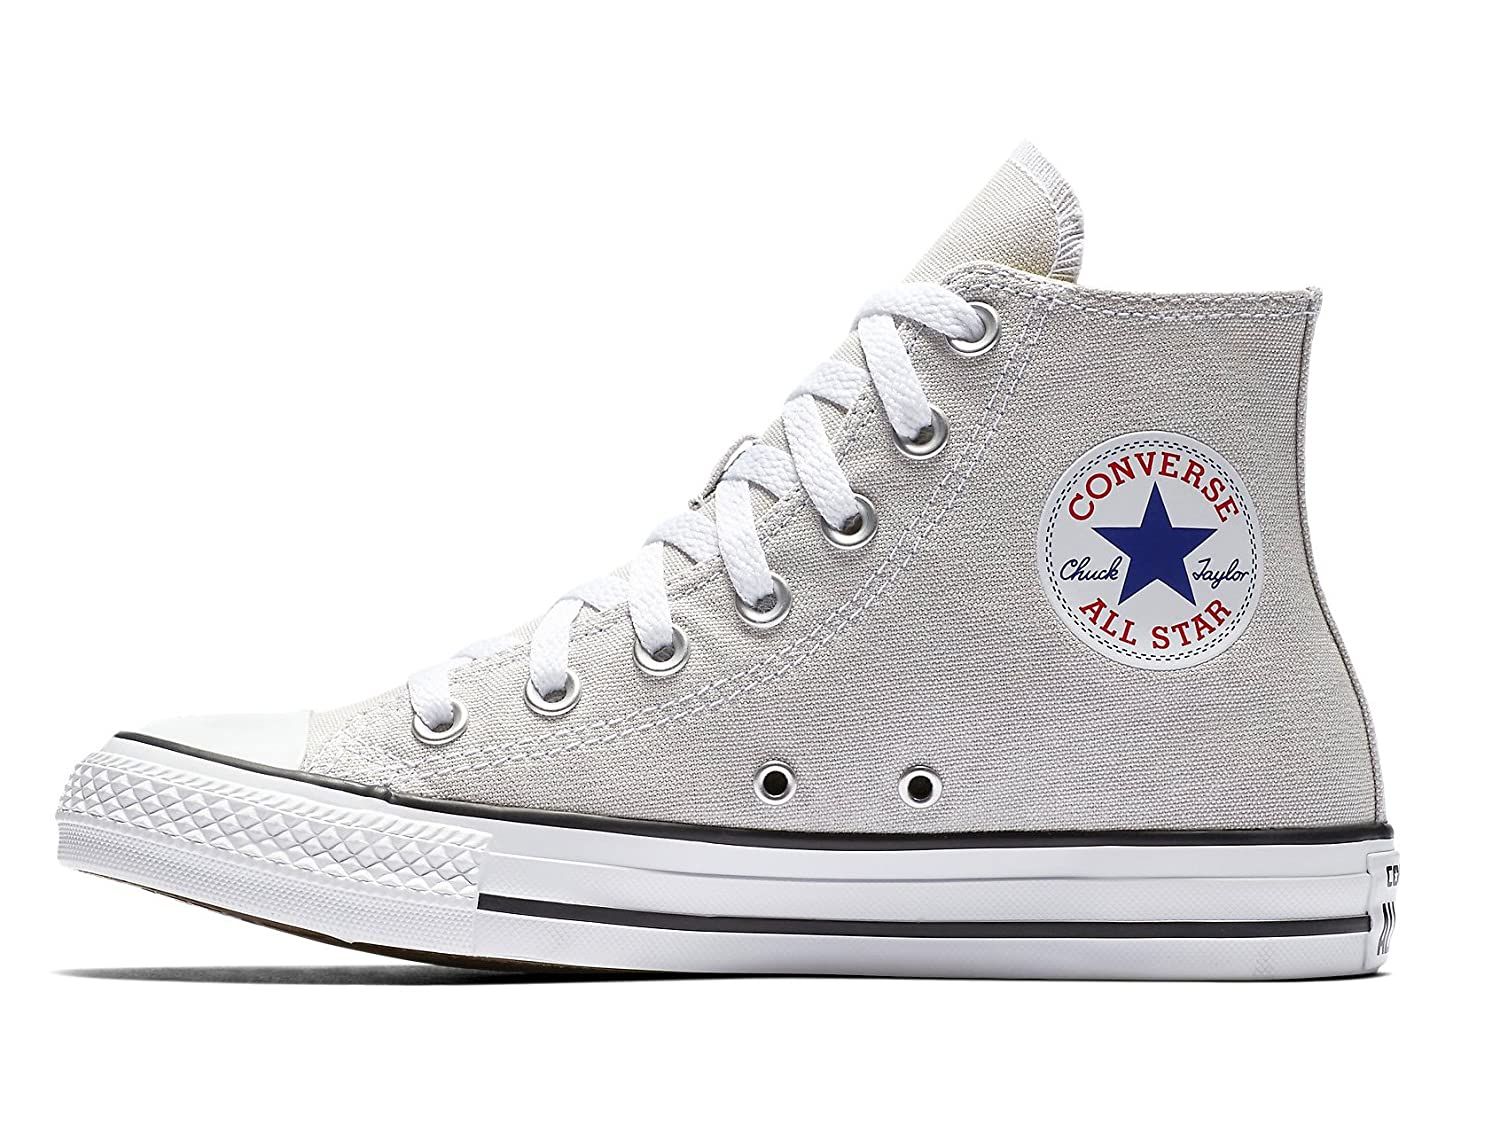 Converse Unisex Chuck Taylor All-Star High-Top Casual Sneakers in Classic Style and Color and Durable Canvas Uppers B01NAKZJTM 42 M EU / 10.5 B(M) US Women / 8.5 D(M) US Men|Pale Putty